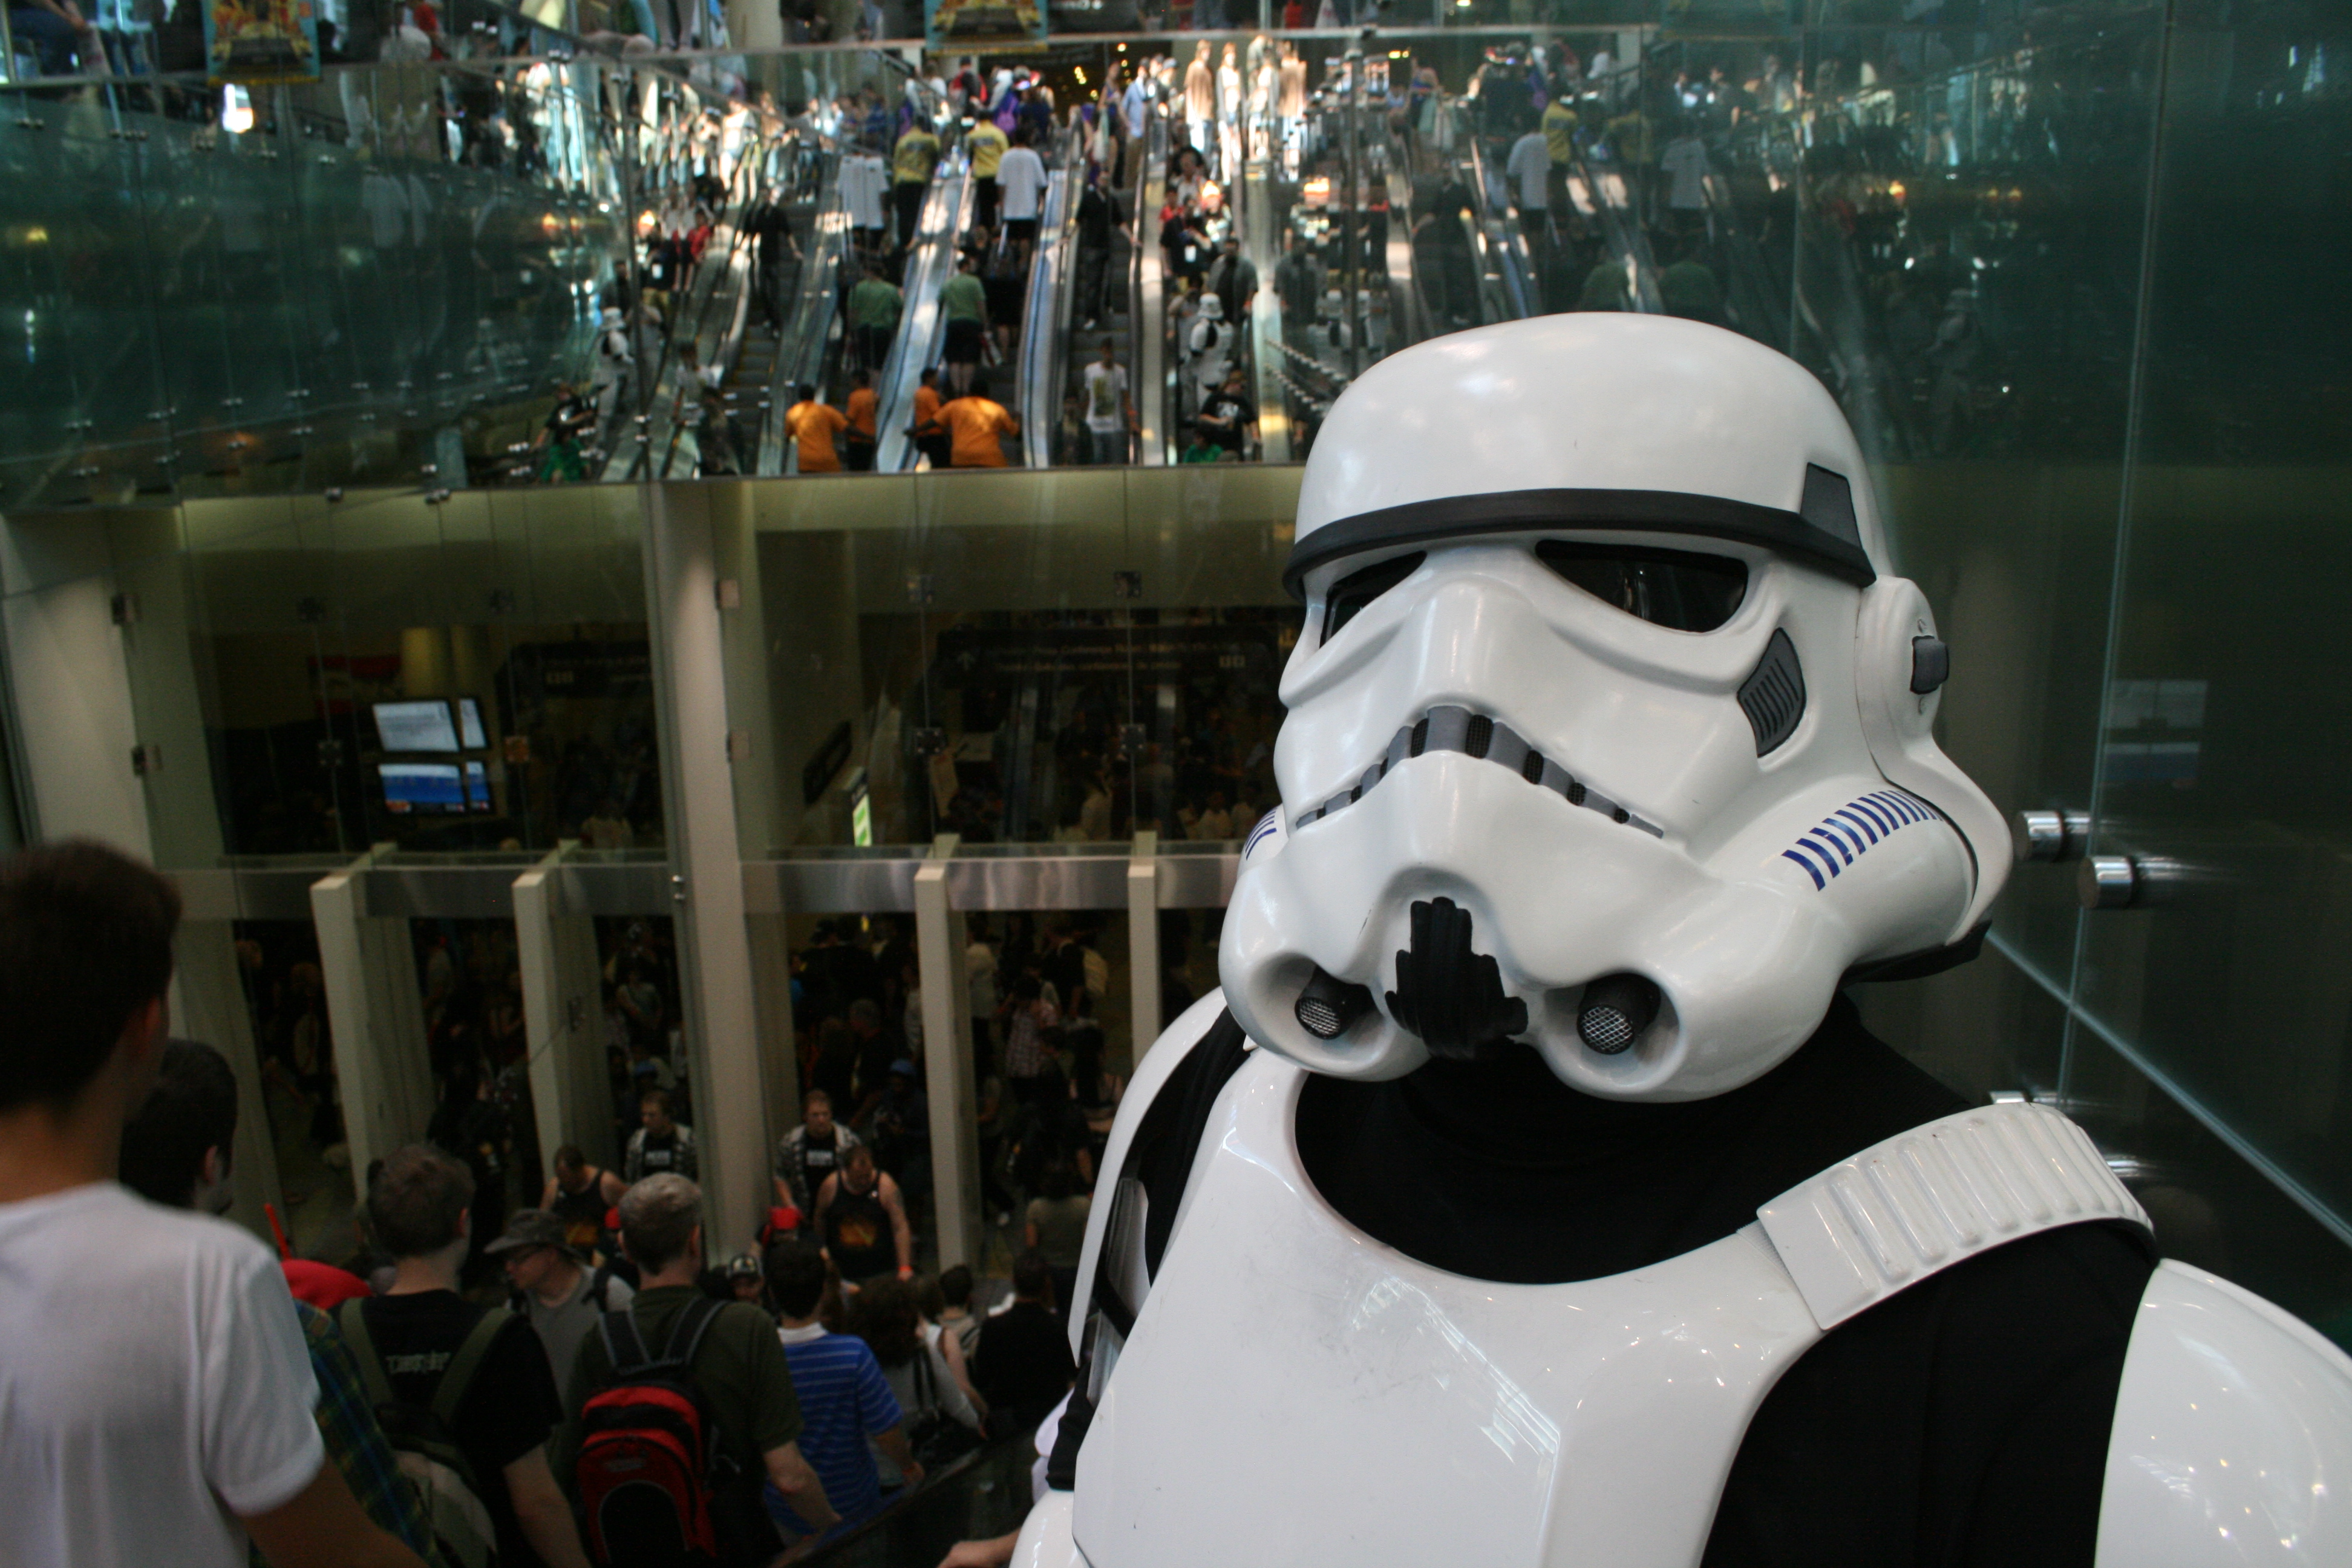 Stormtroopers use the escalators too (Photo by Jonathan Ore)